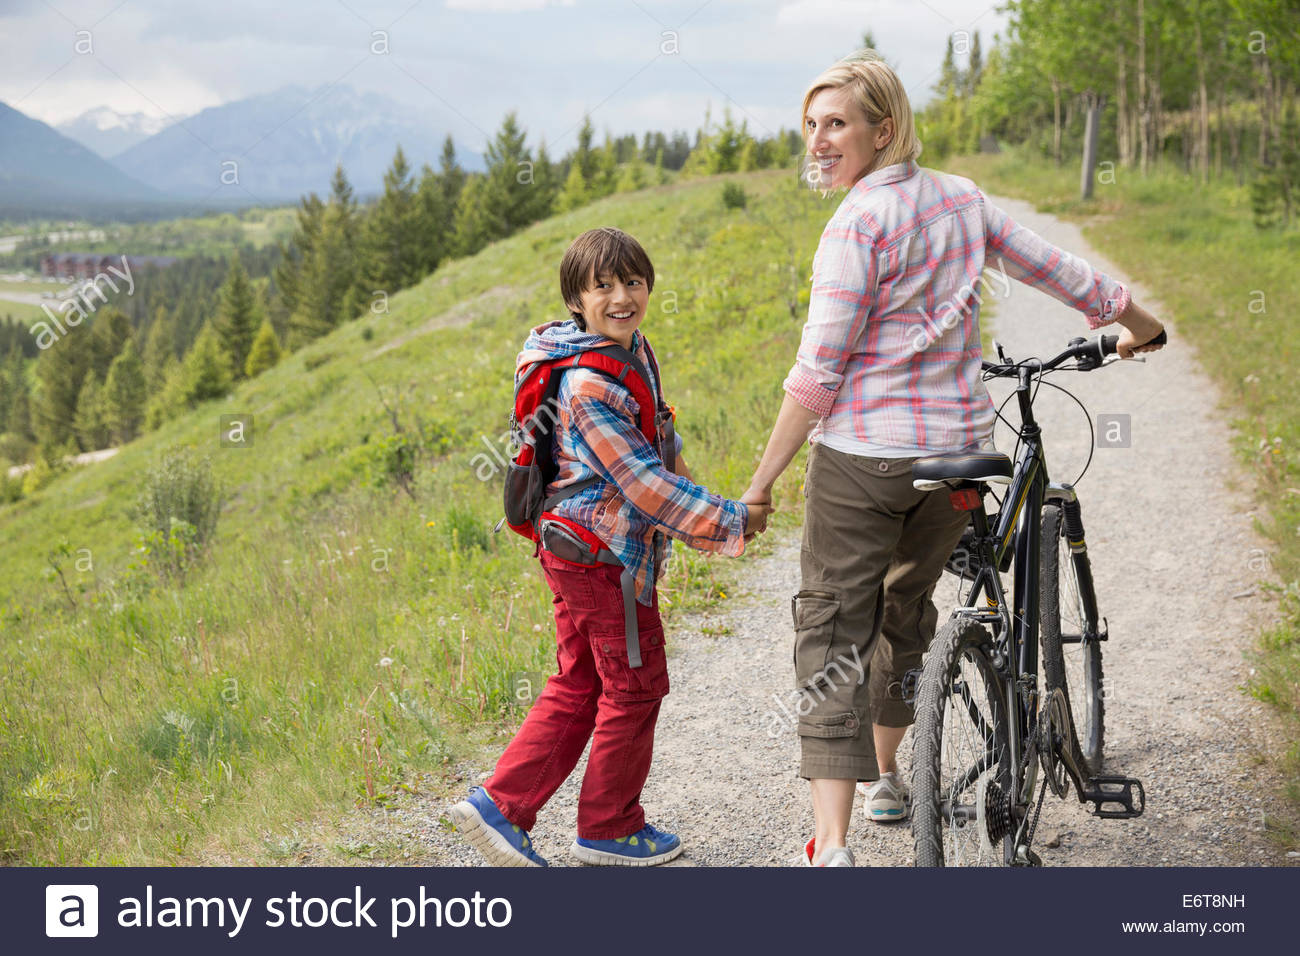 Mother and son walking on dirt path - Stock Image